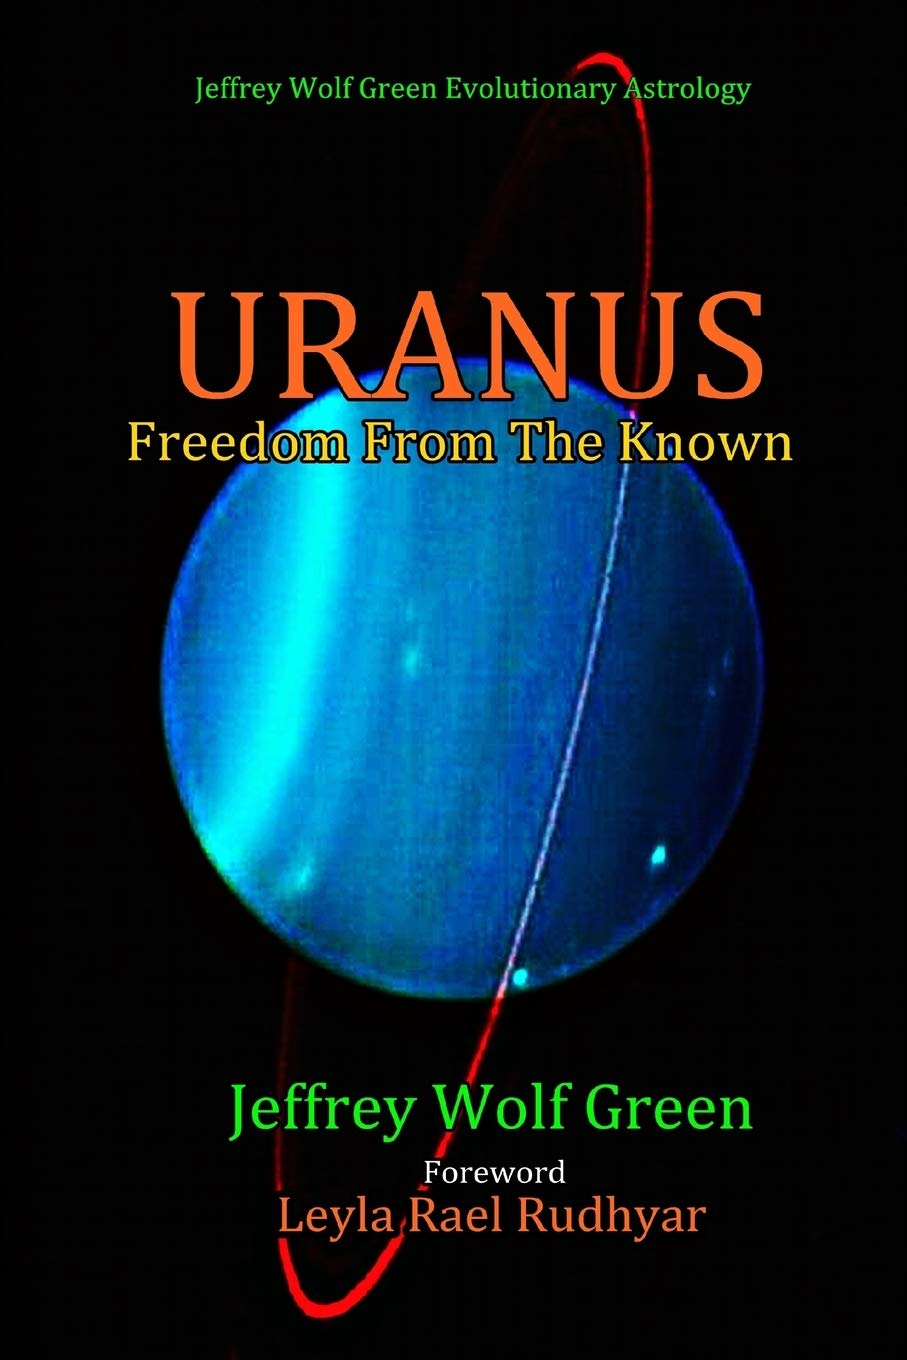 Uranus: Freedom From The Known